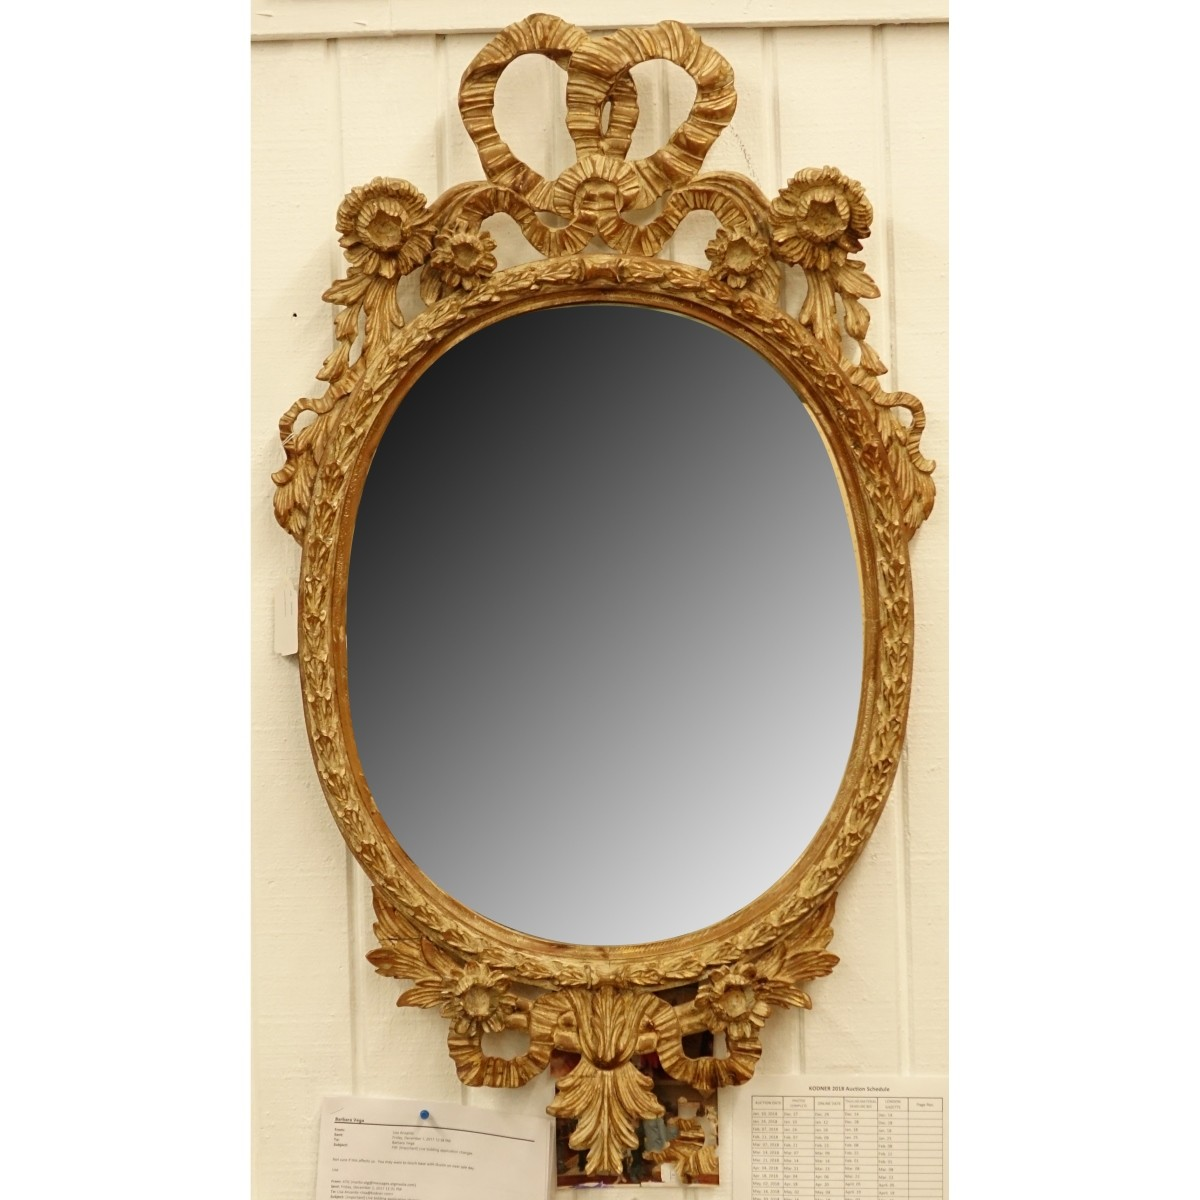 Louis XVI Style Gilt Carved Oval Mirror